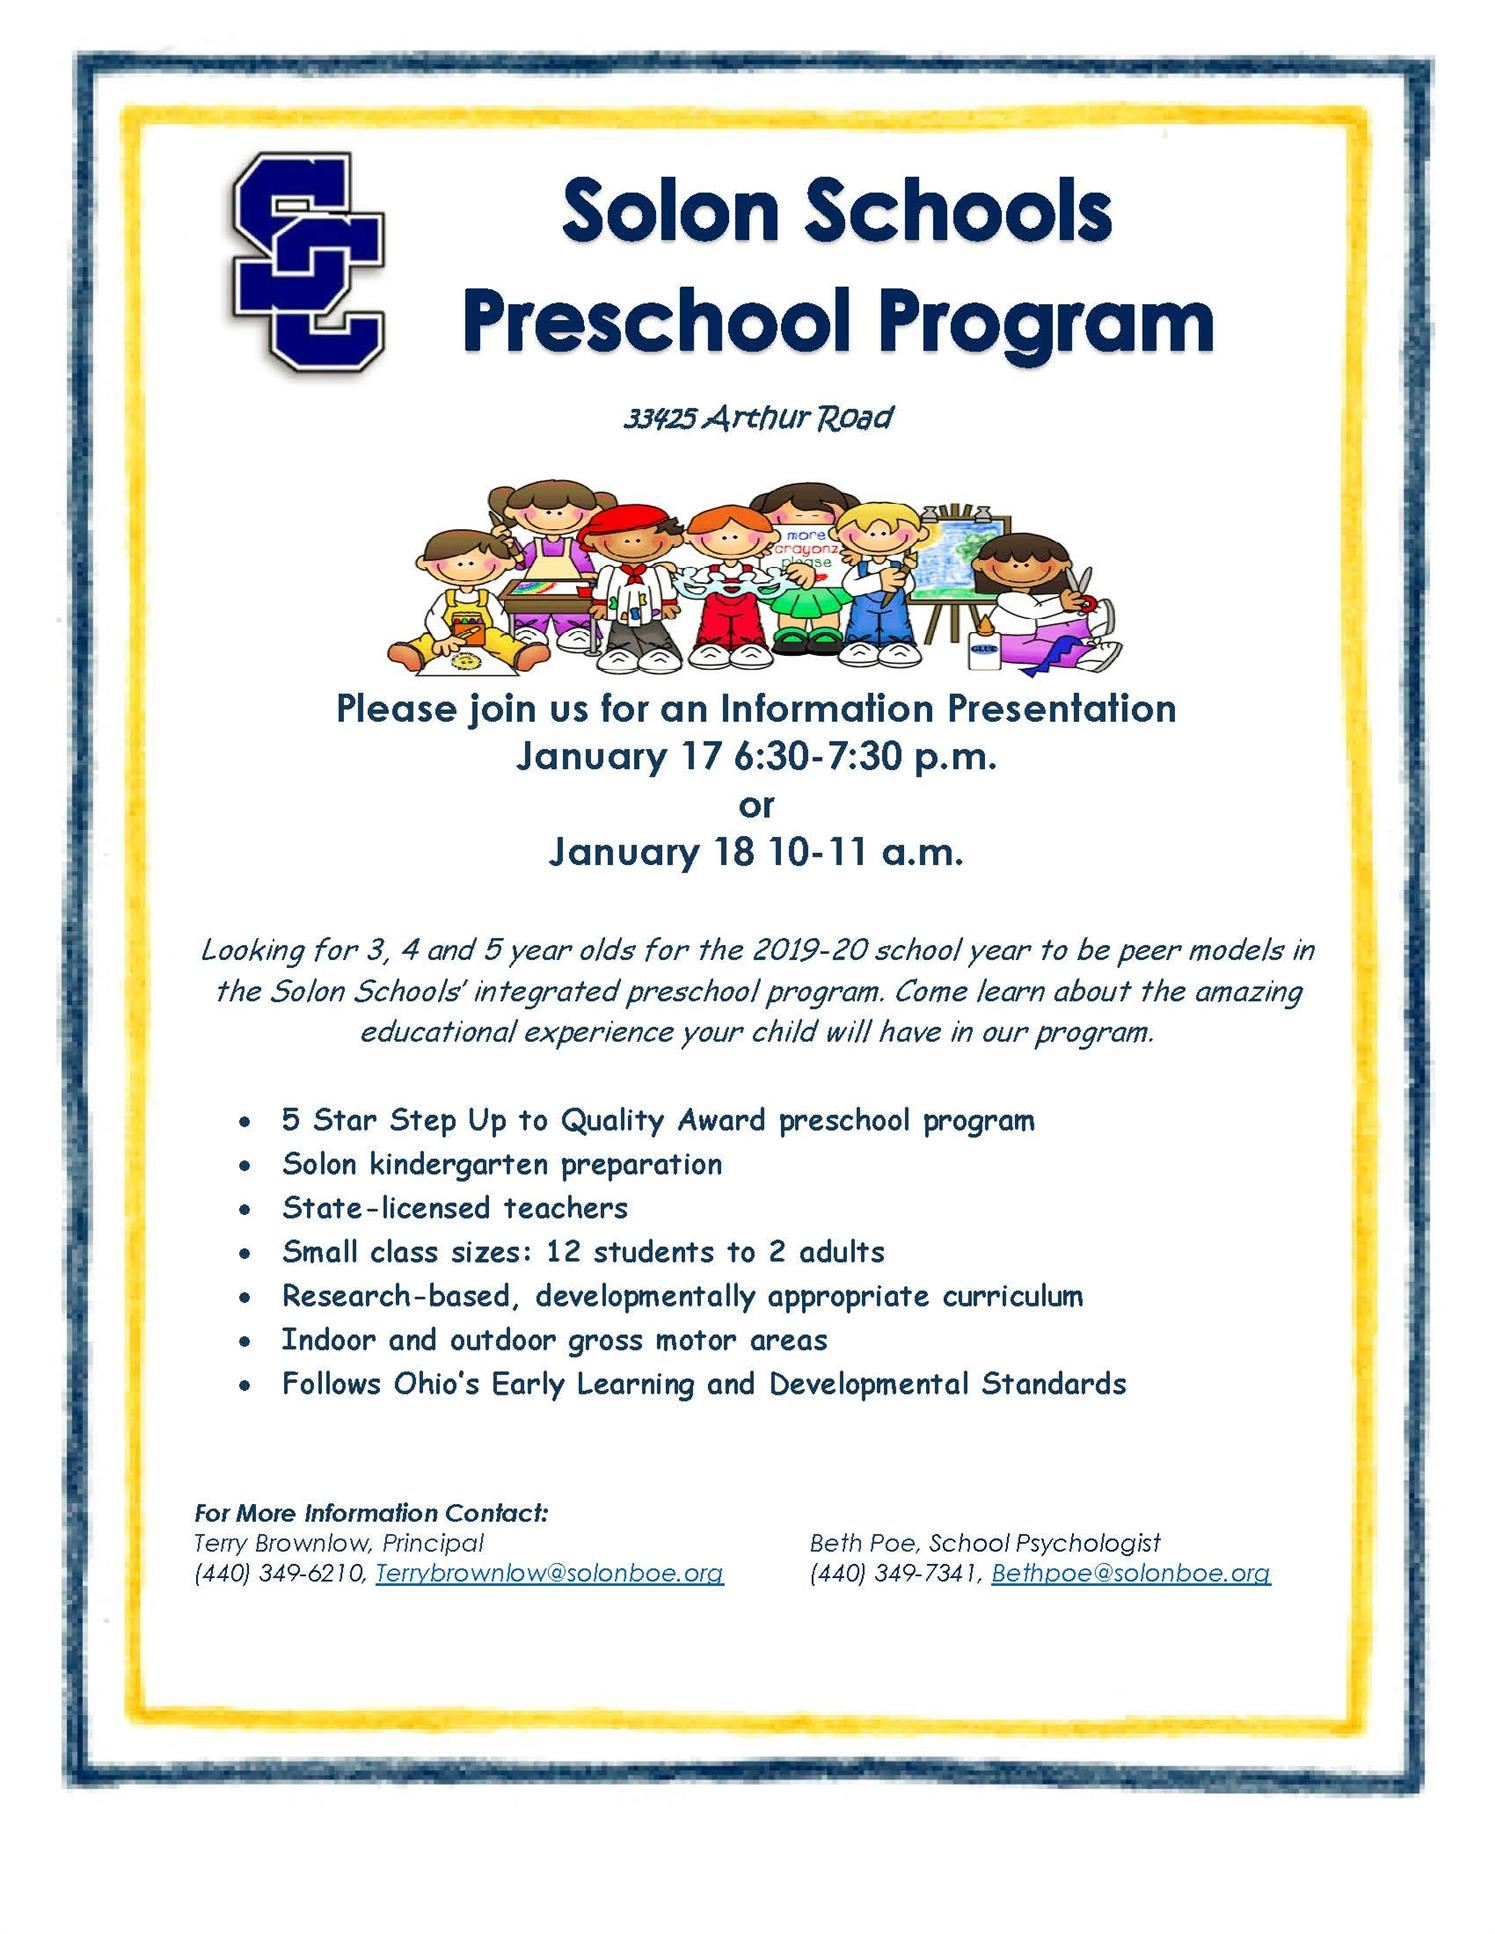 Invitation to January 17 and 18 open house for preschool peer models